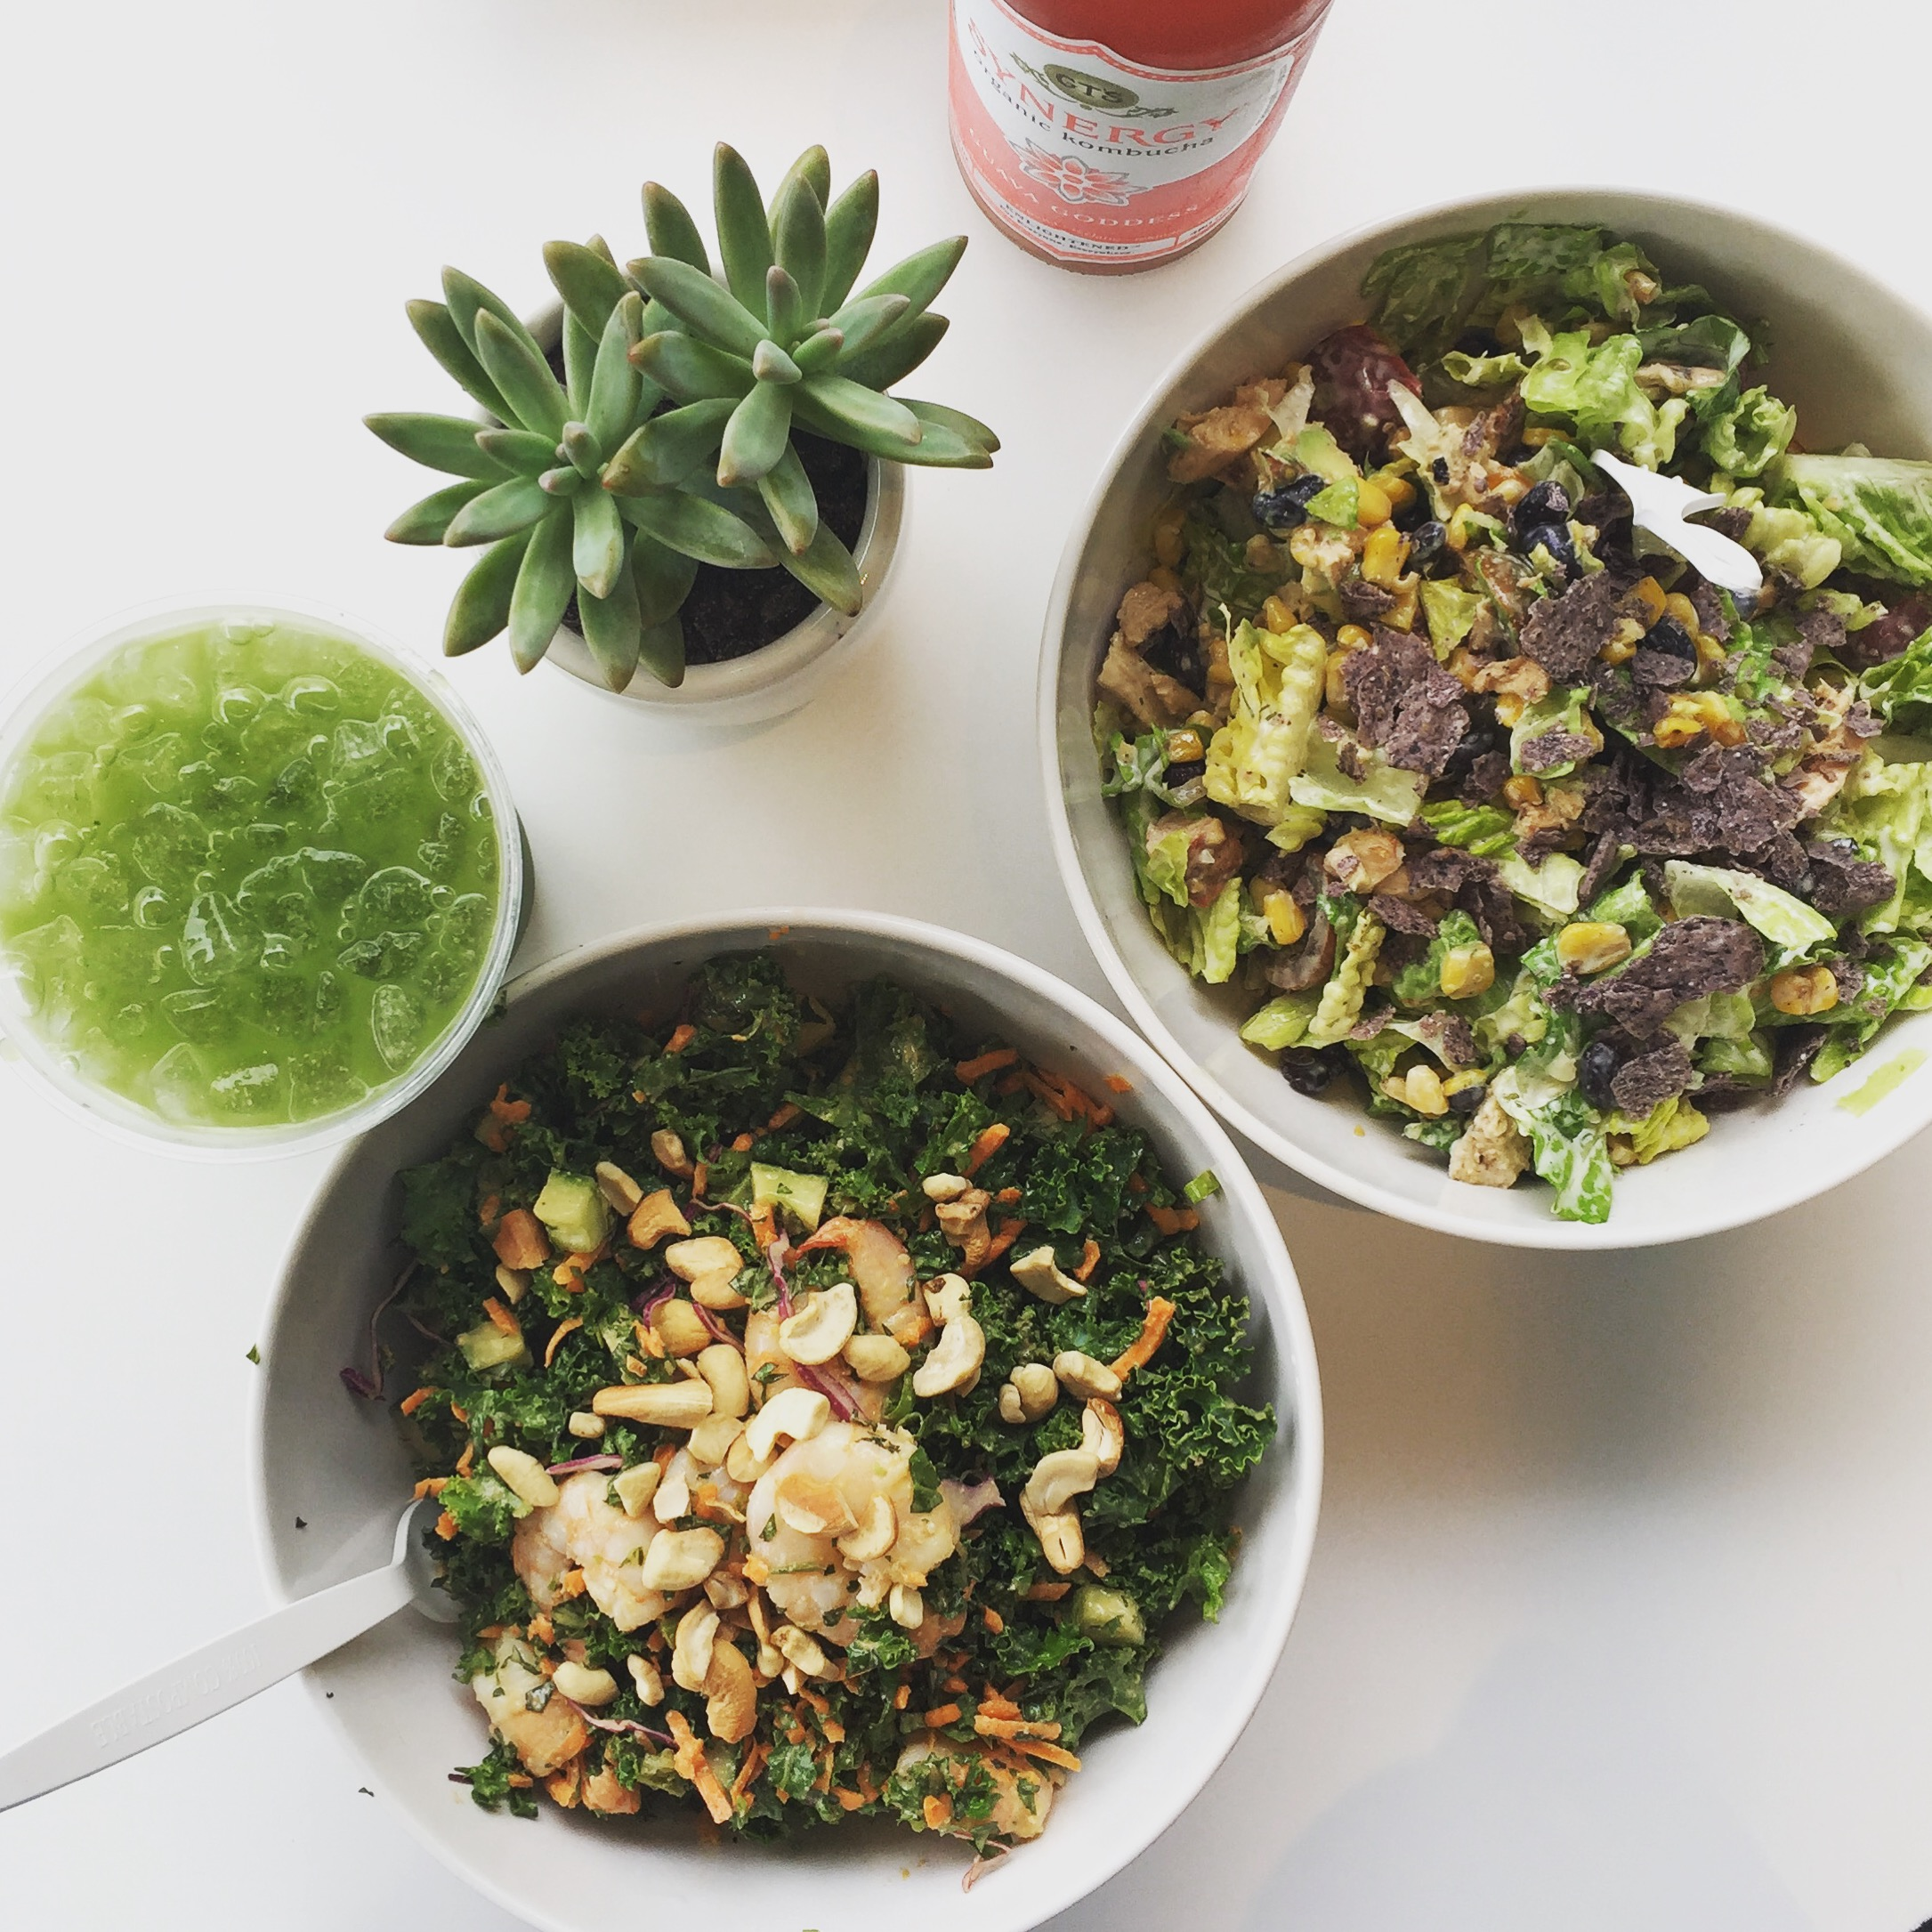 Top 5 Healthy Restaurants In Atl The Well Fit Llc